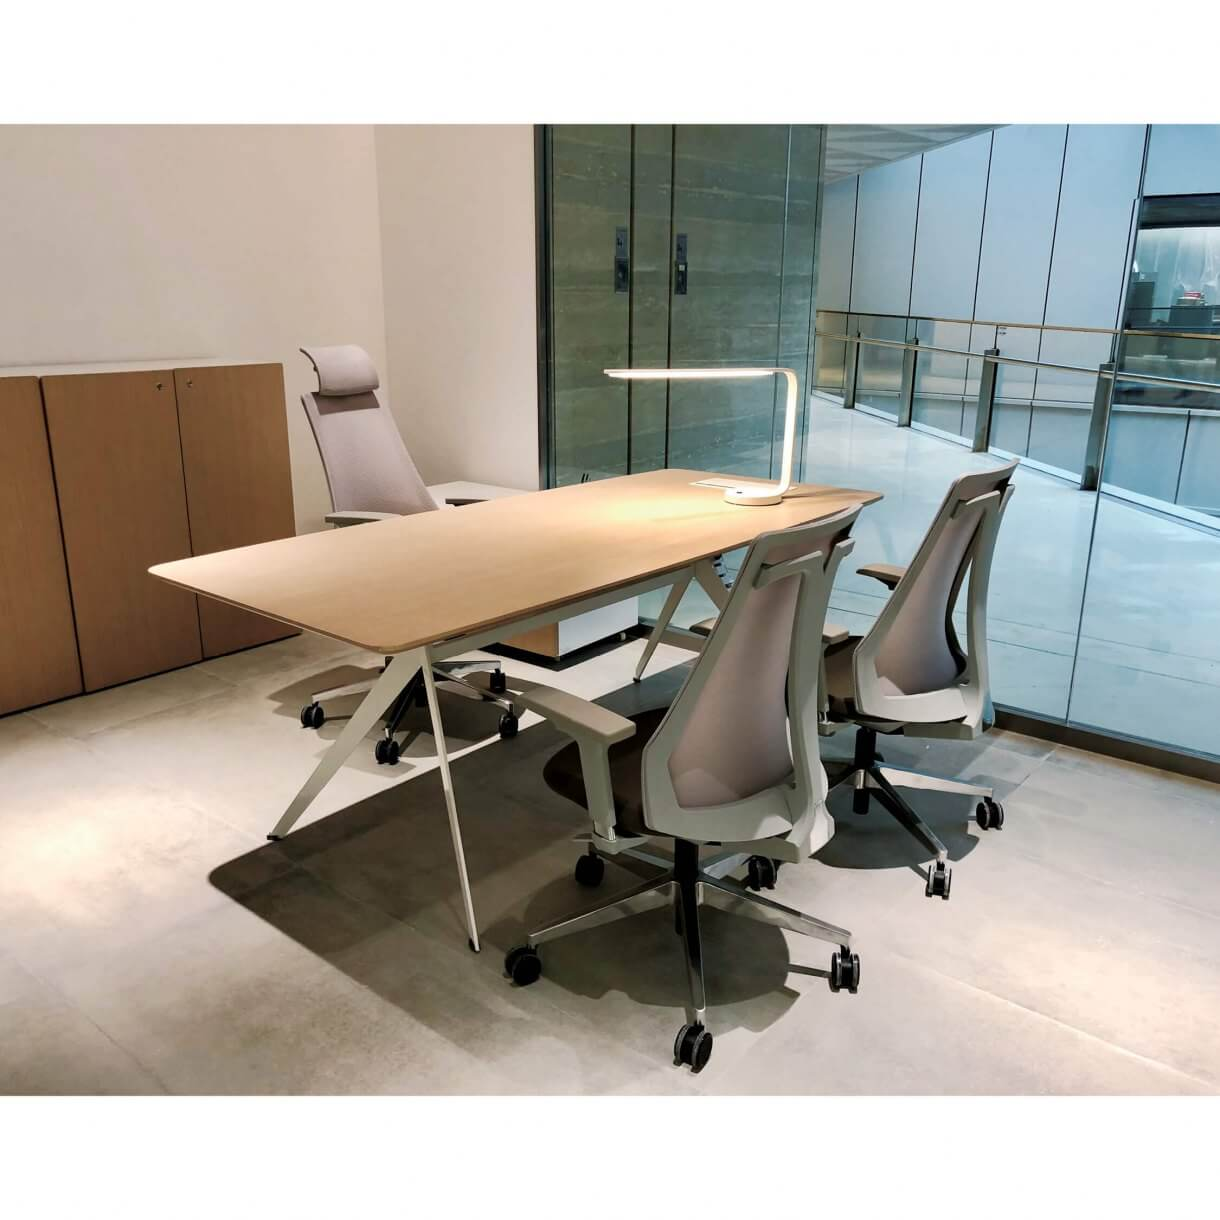 Choose Office Chairs with Wipeable Surface for Optimum Hygiene - Comfort Furniture